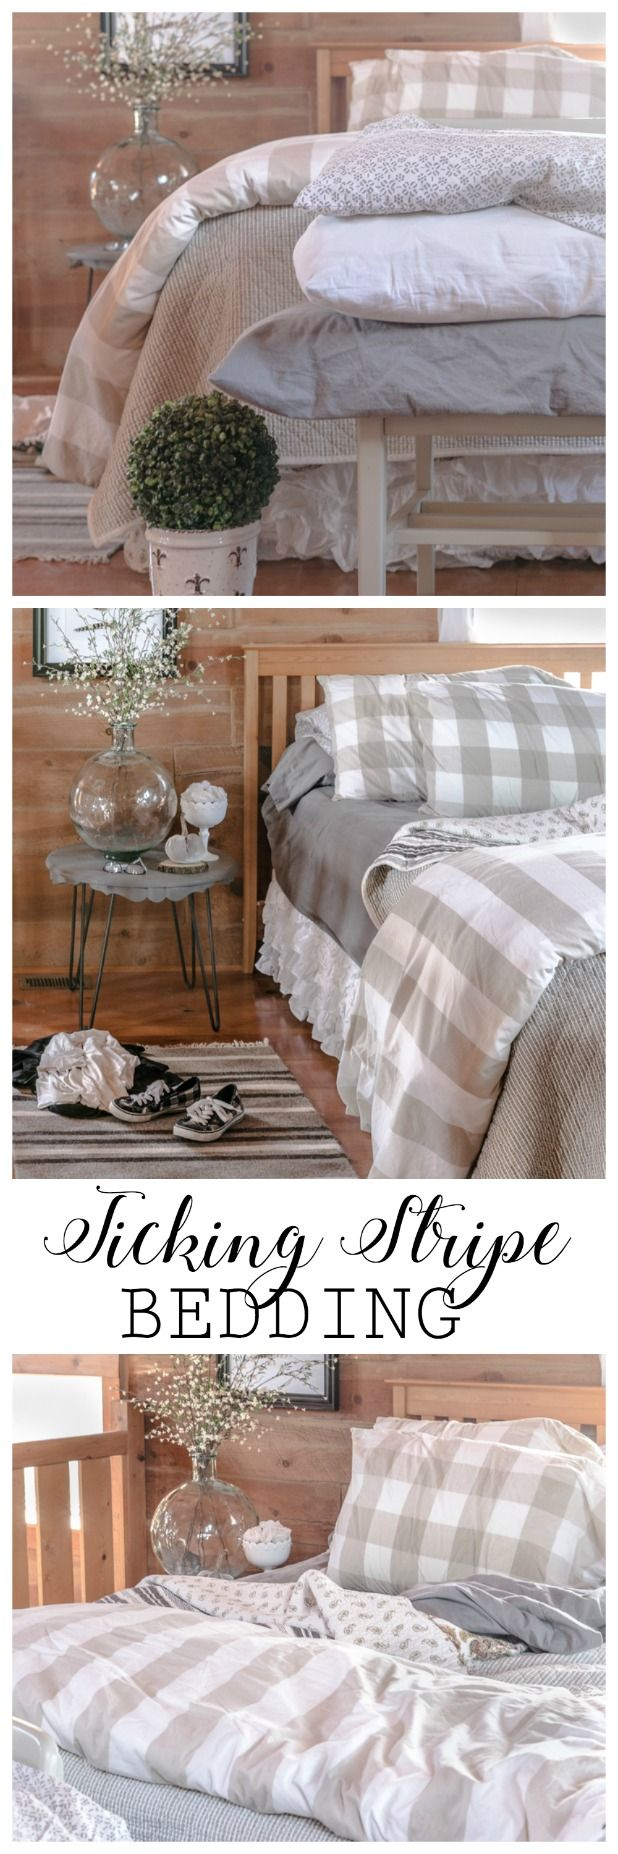 25 best ideas about ticking stripe on pinterest striped bedding farmhouse bed pillows and. Black Bedroom Furniture Sets. Home Design Ideas